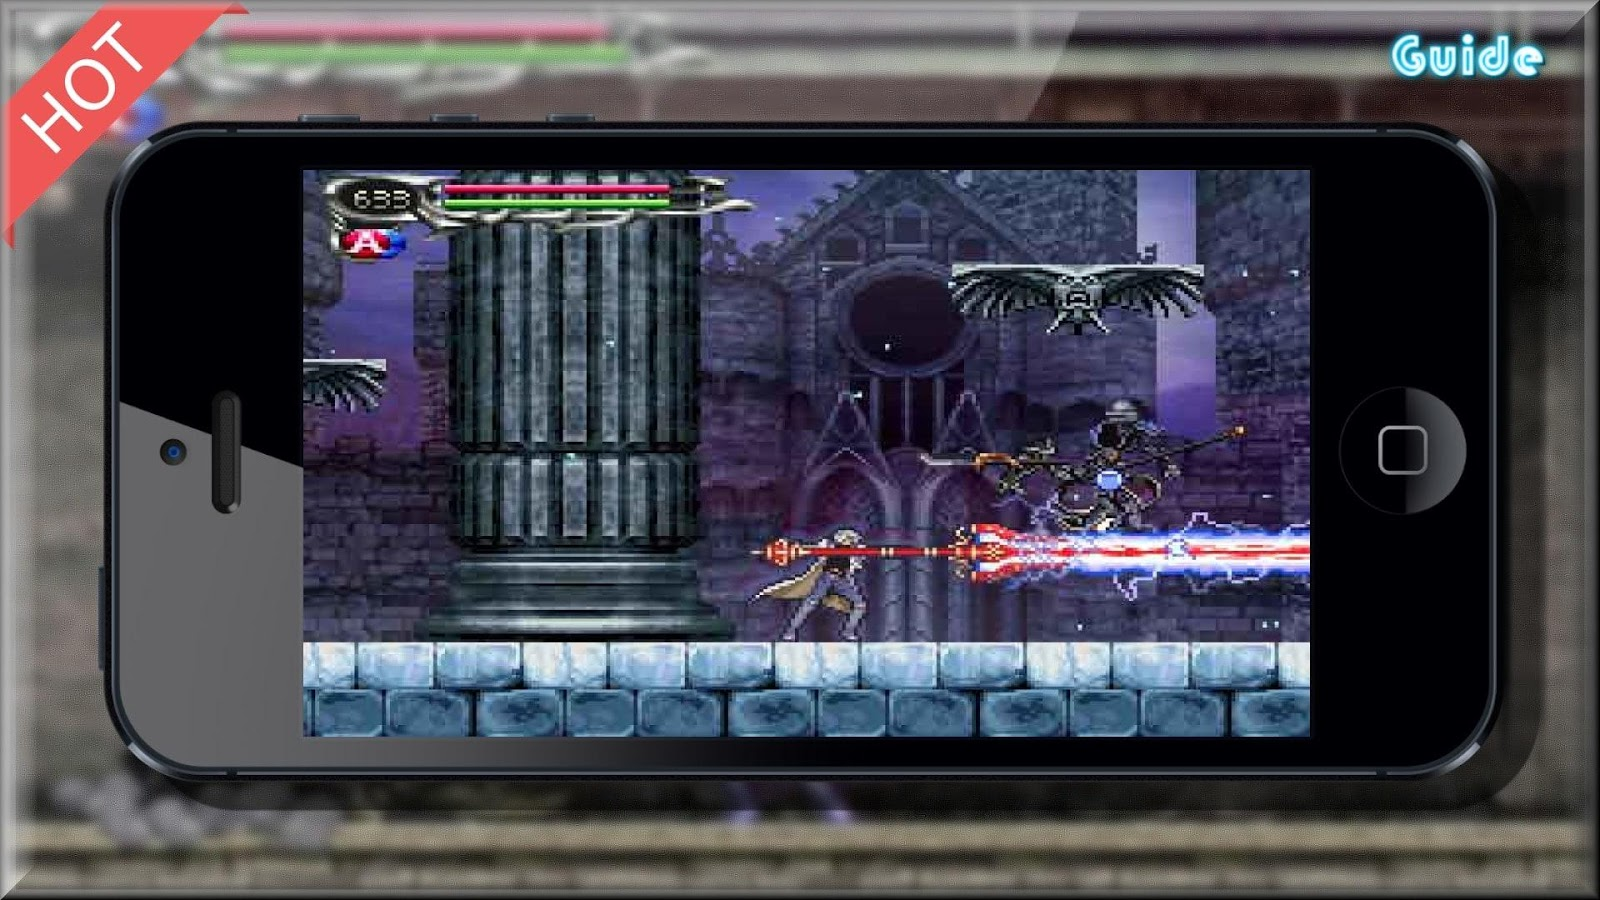 guide castlevania dawn of sorrow 1 0 APK Download - Android